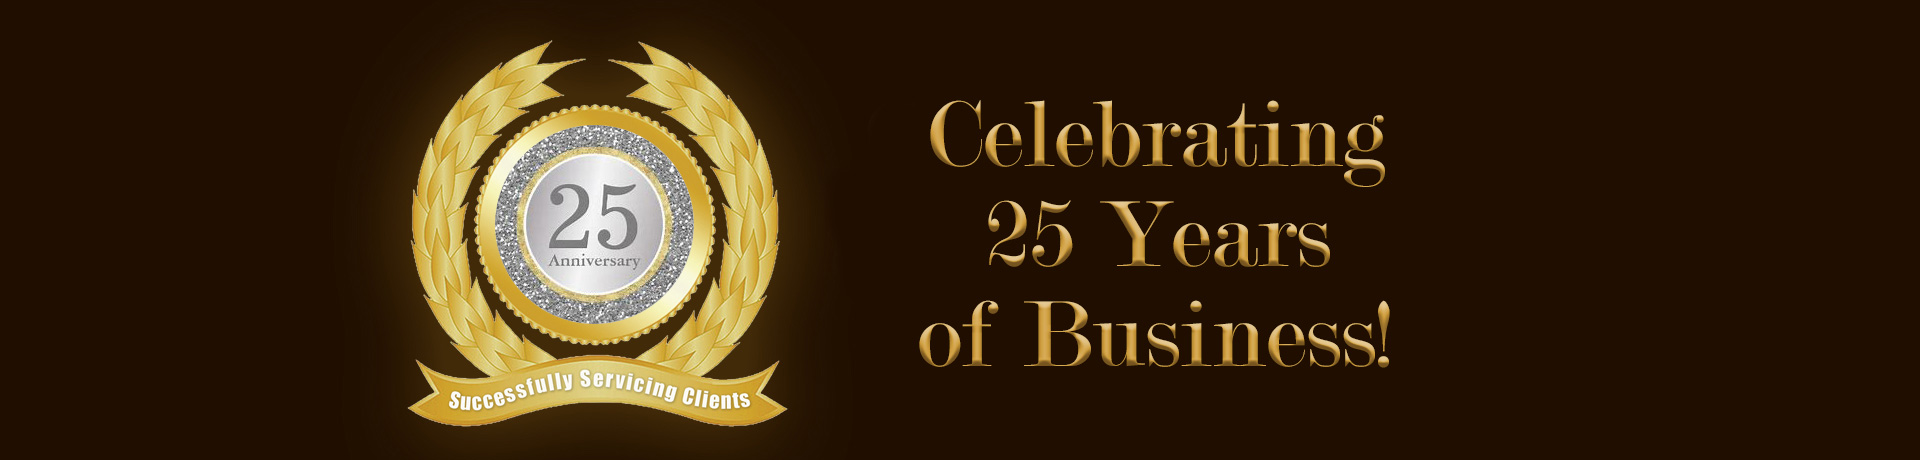 Celebrating 25 Years of Business!